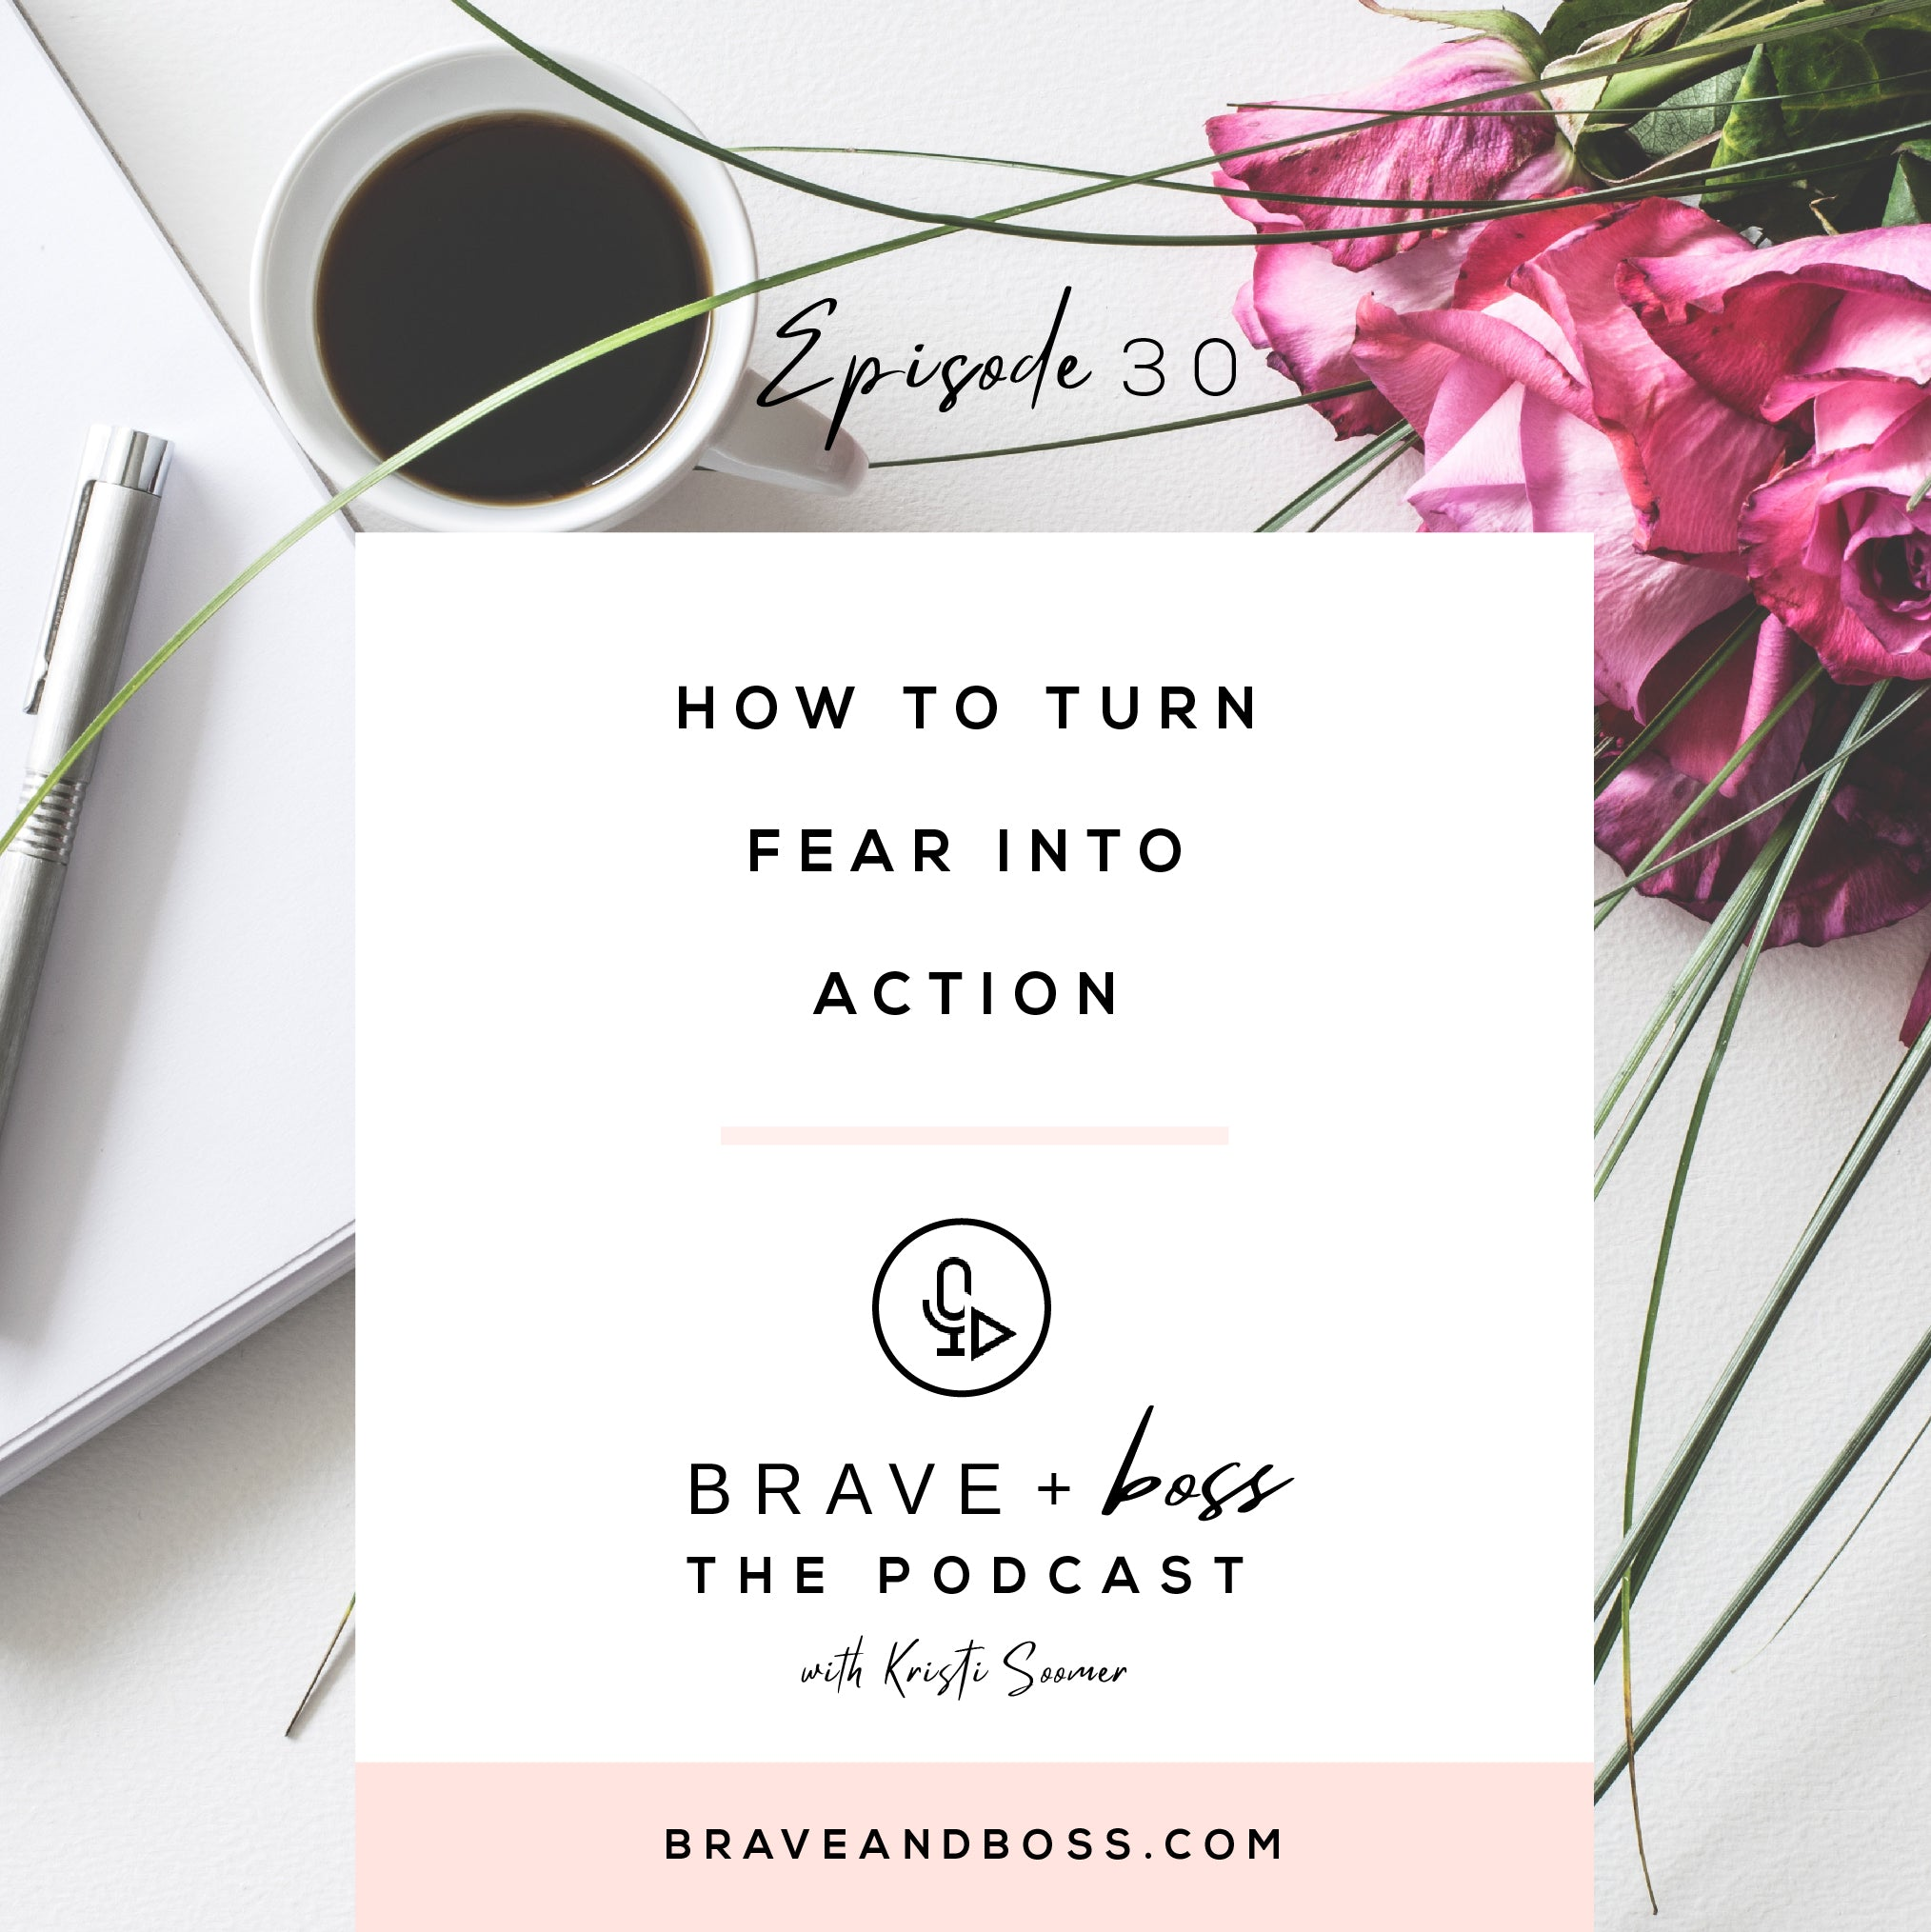 How to Turn Fear into Action